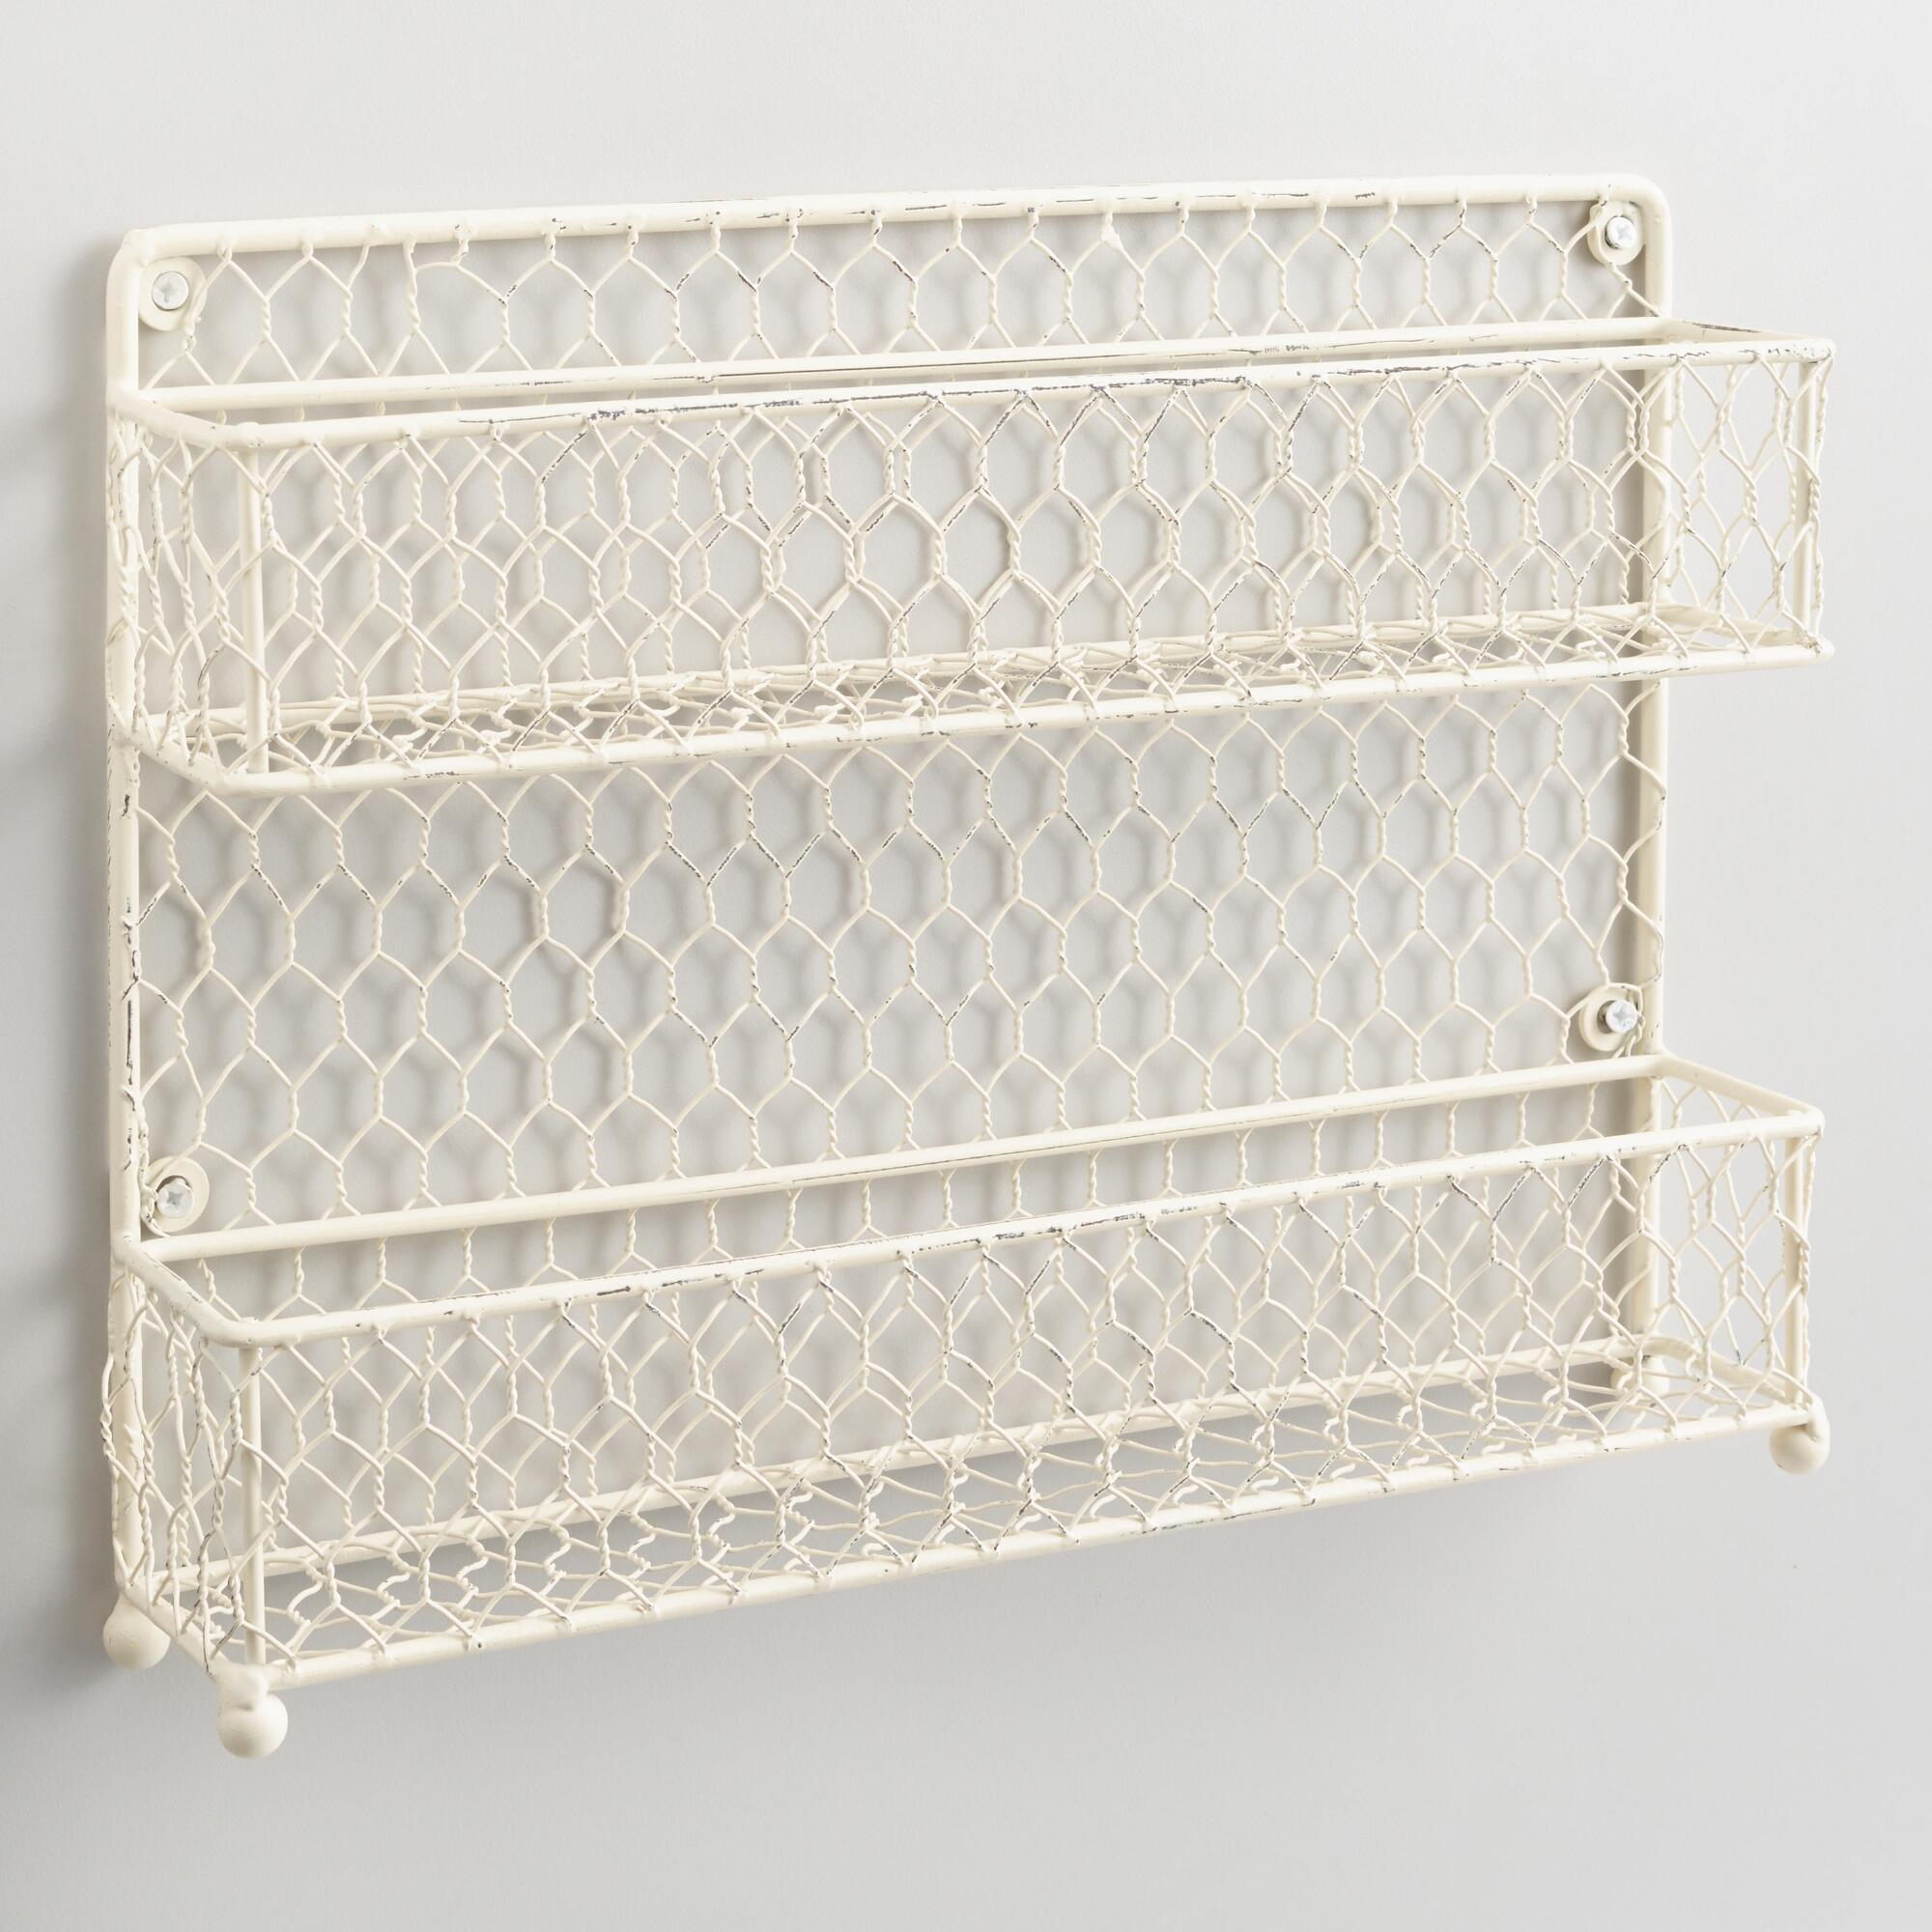 Antique White Wire Two-Tier Spice Rack by